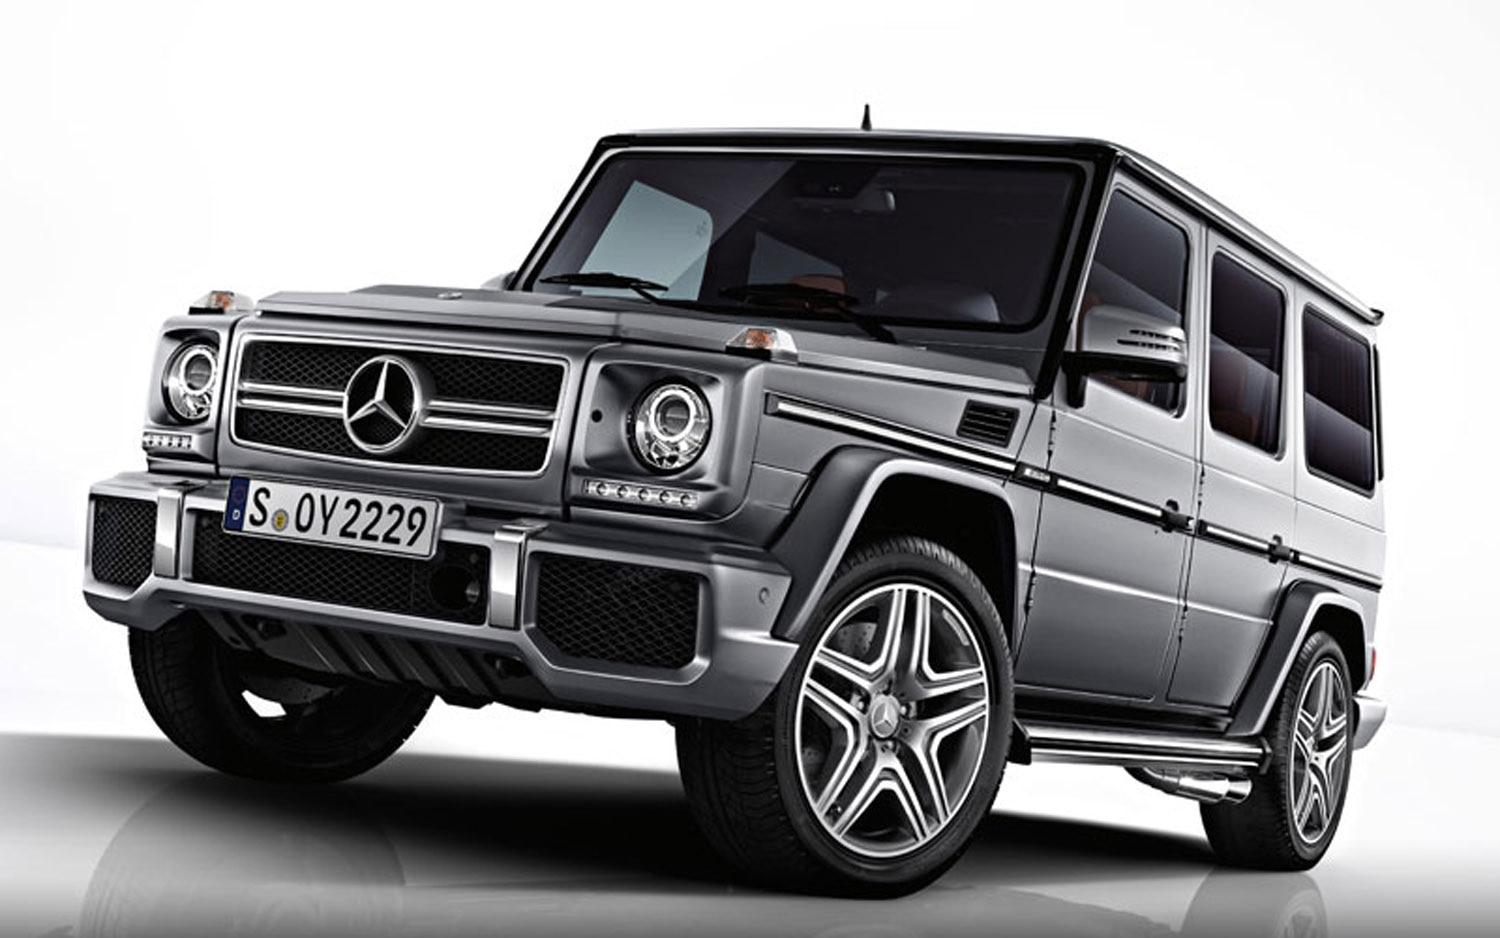 Faster Box Mercedes Benz Releases Photos Of 2013 G63 Amg